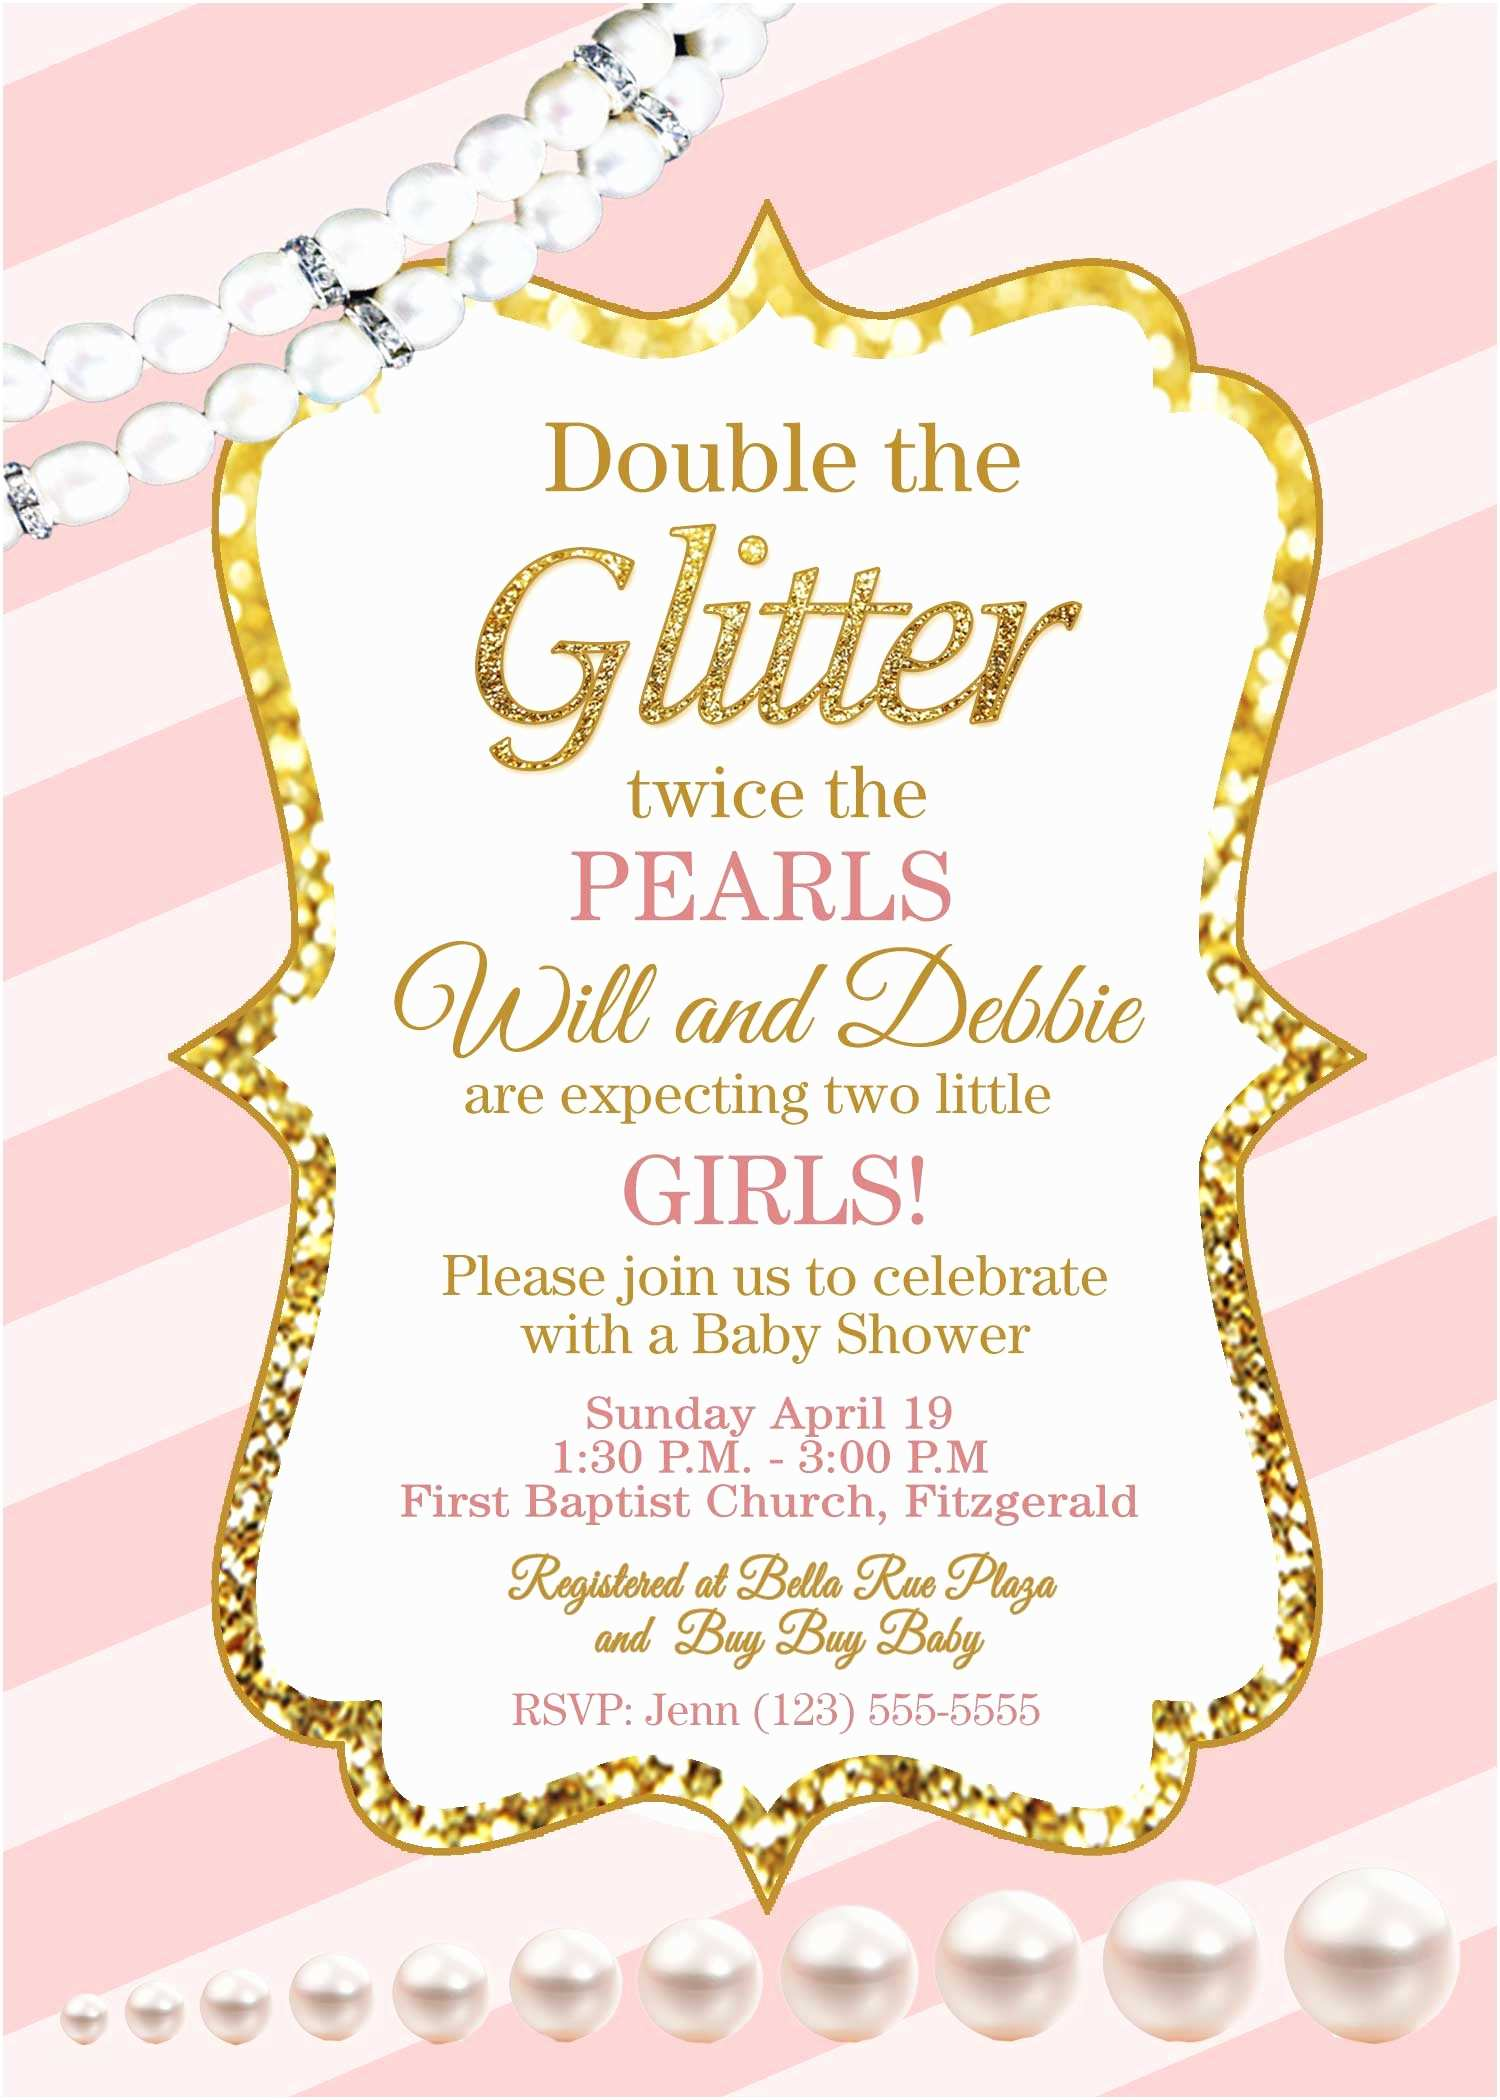 Pink and Gold Baby Shower Invitations Pink and Gold Baby Shower Invitations